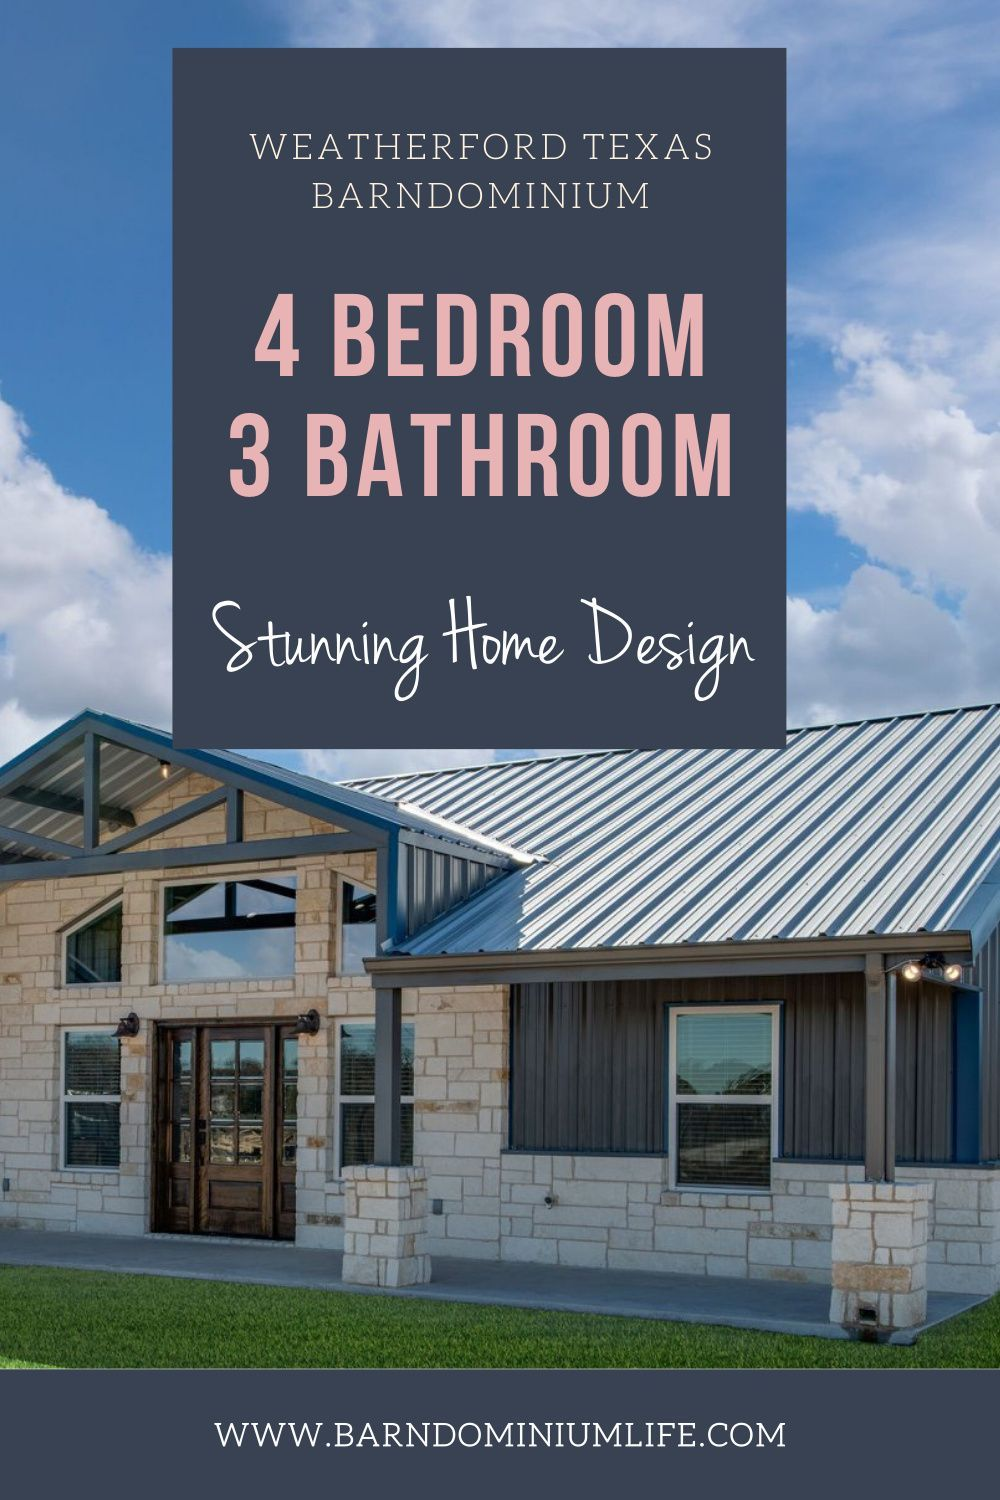 Weatherford Texas Barndominum Gorgeous 4 Bedroom Overview In 2020 Barn Style House Barn House Plans Dream House Plans